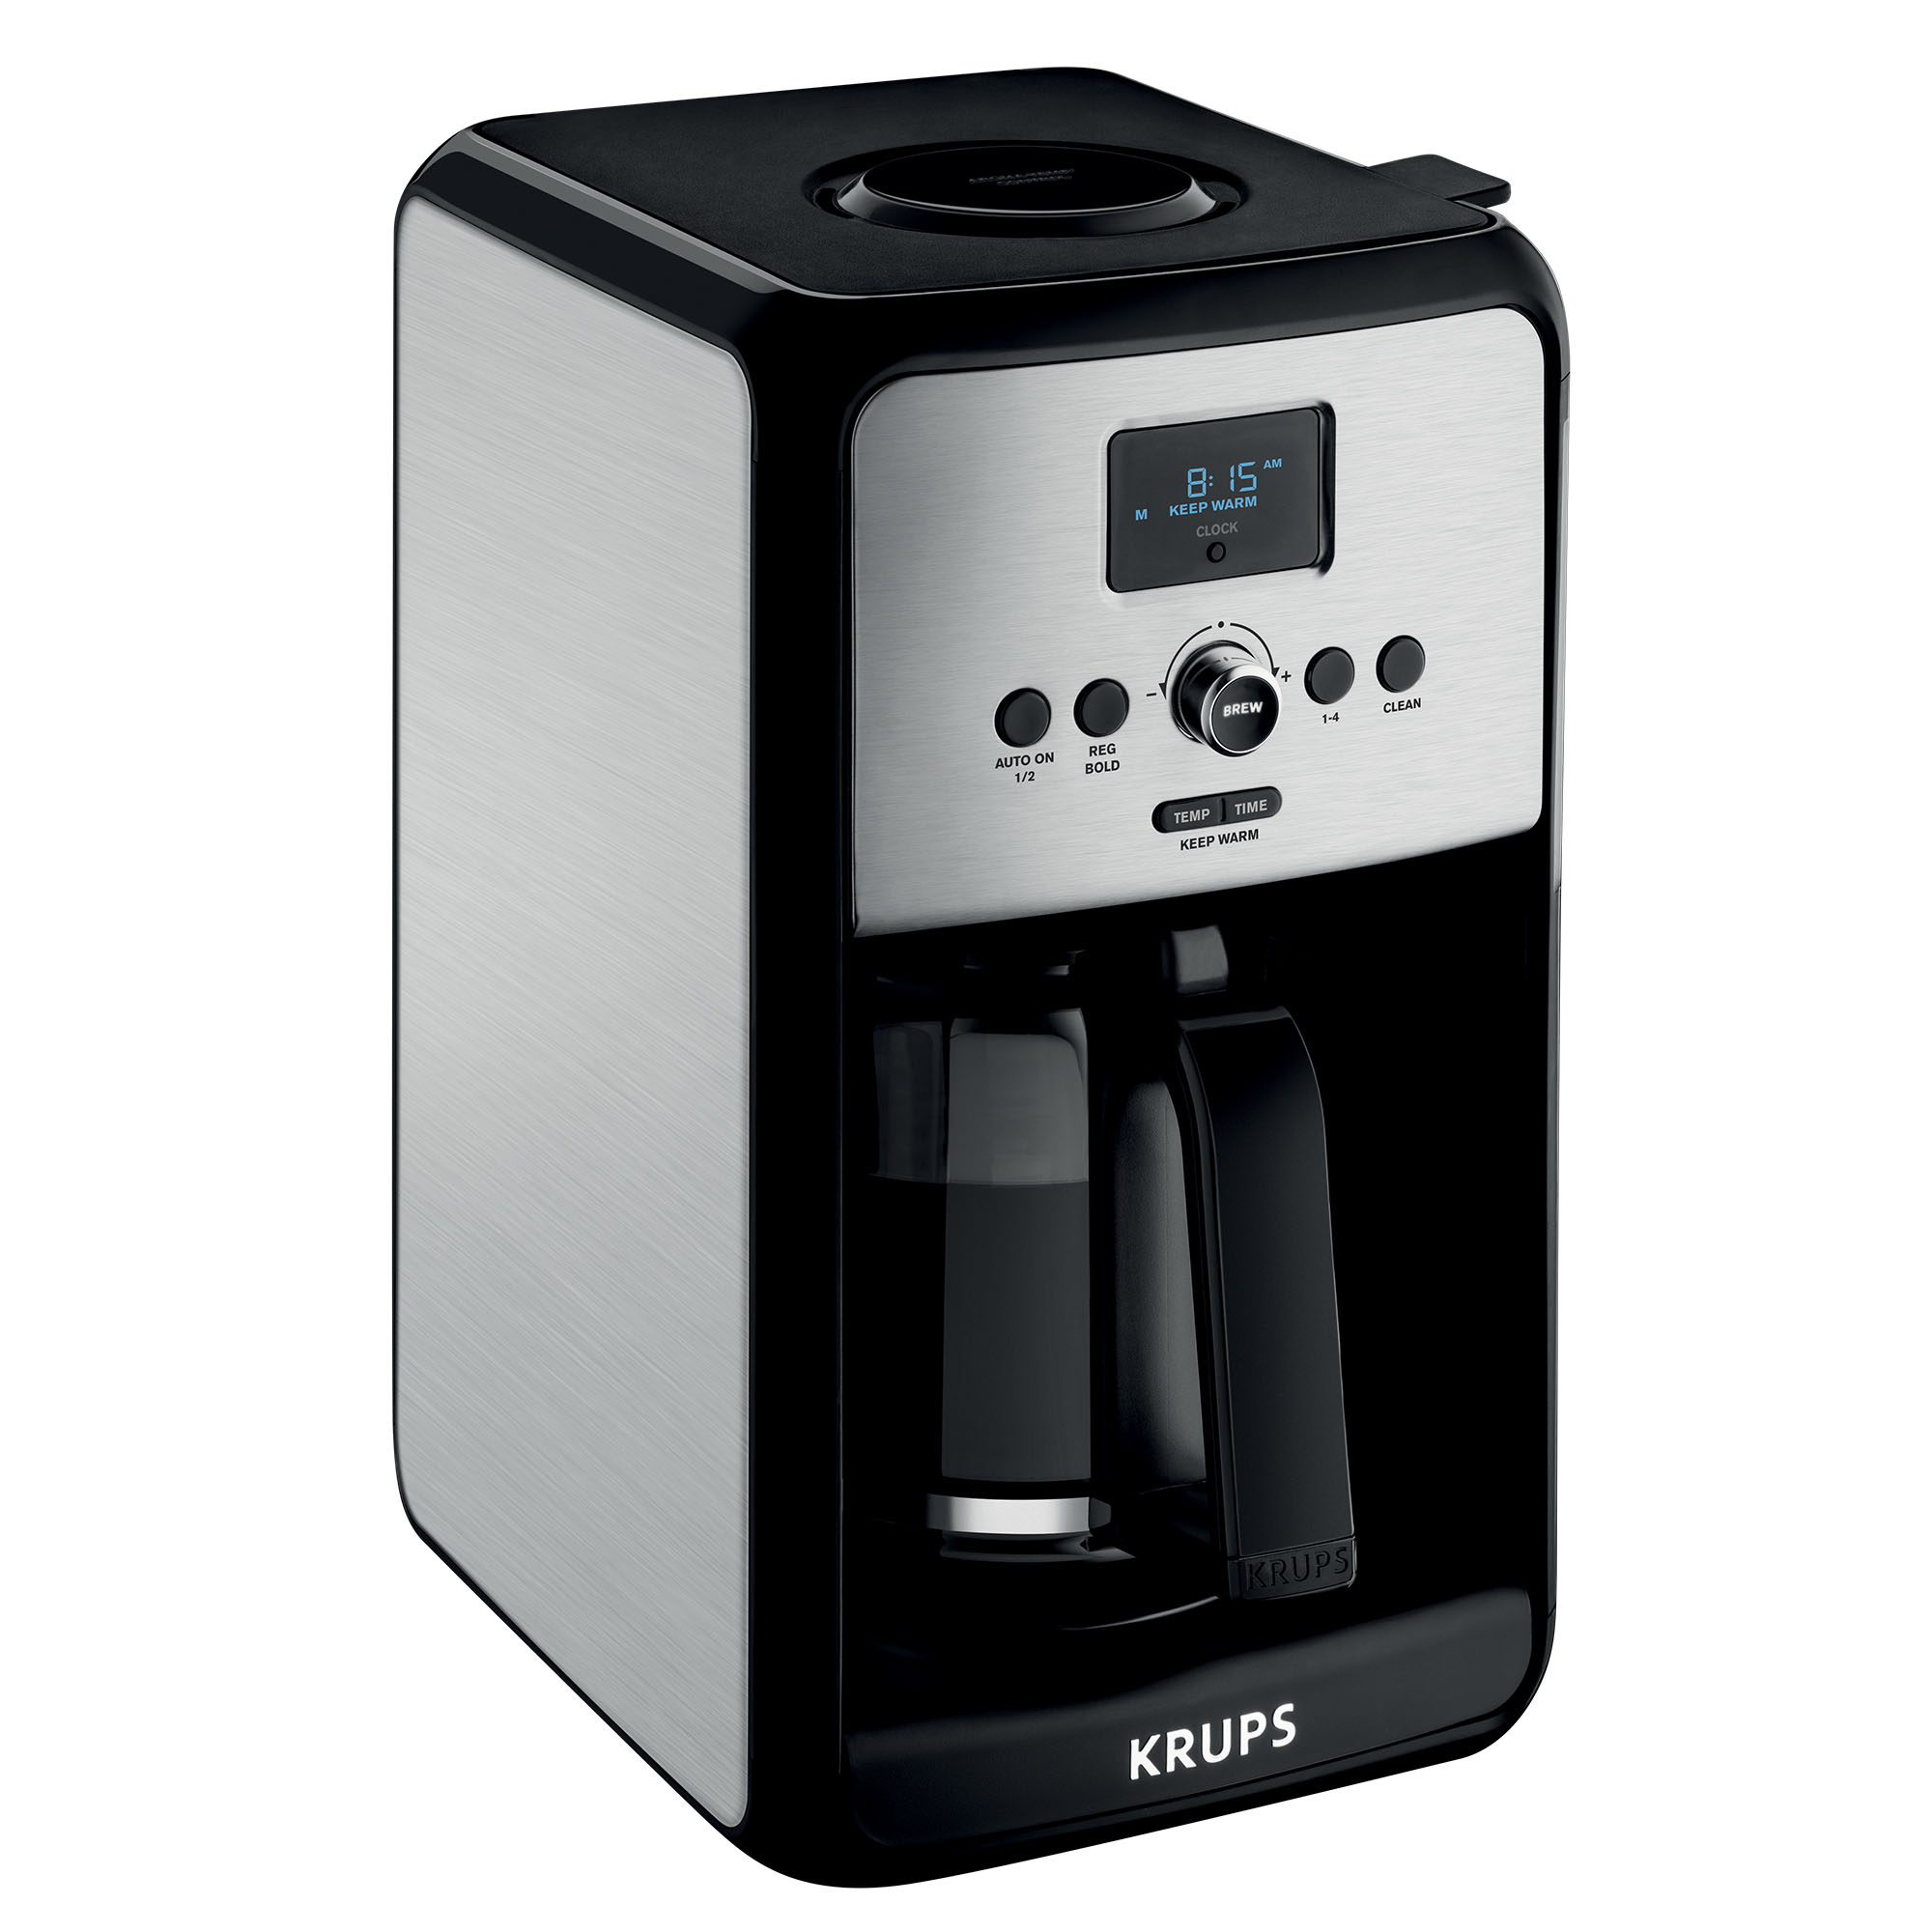 krups launches a new line of filtered coffee makers kitchenware news housewares. Black Bedroom Furniture Sets. Home Design Ideas